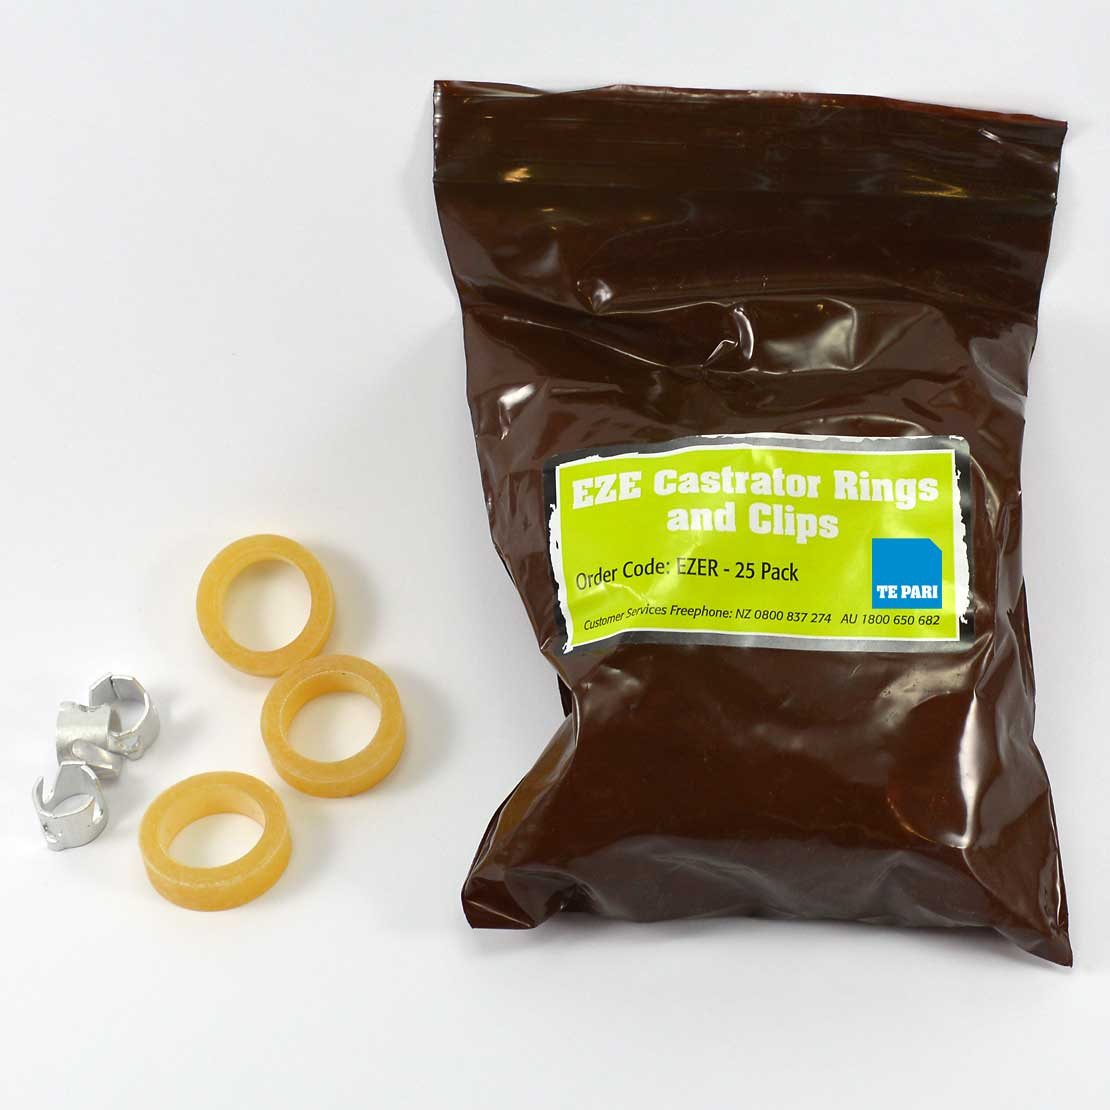 EZE Castrator Rings and clips - 25 pack